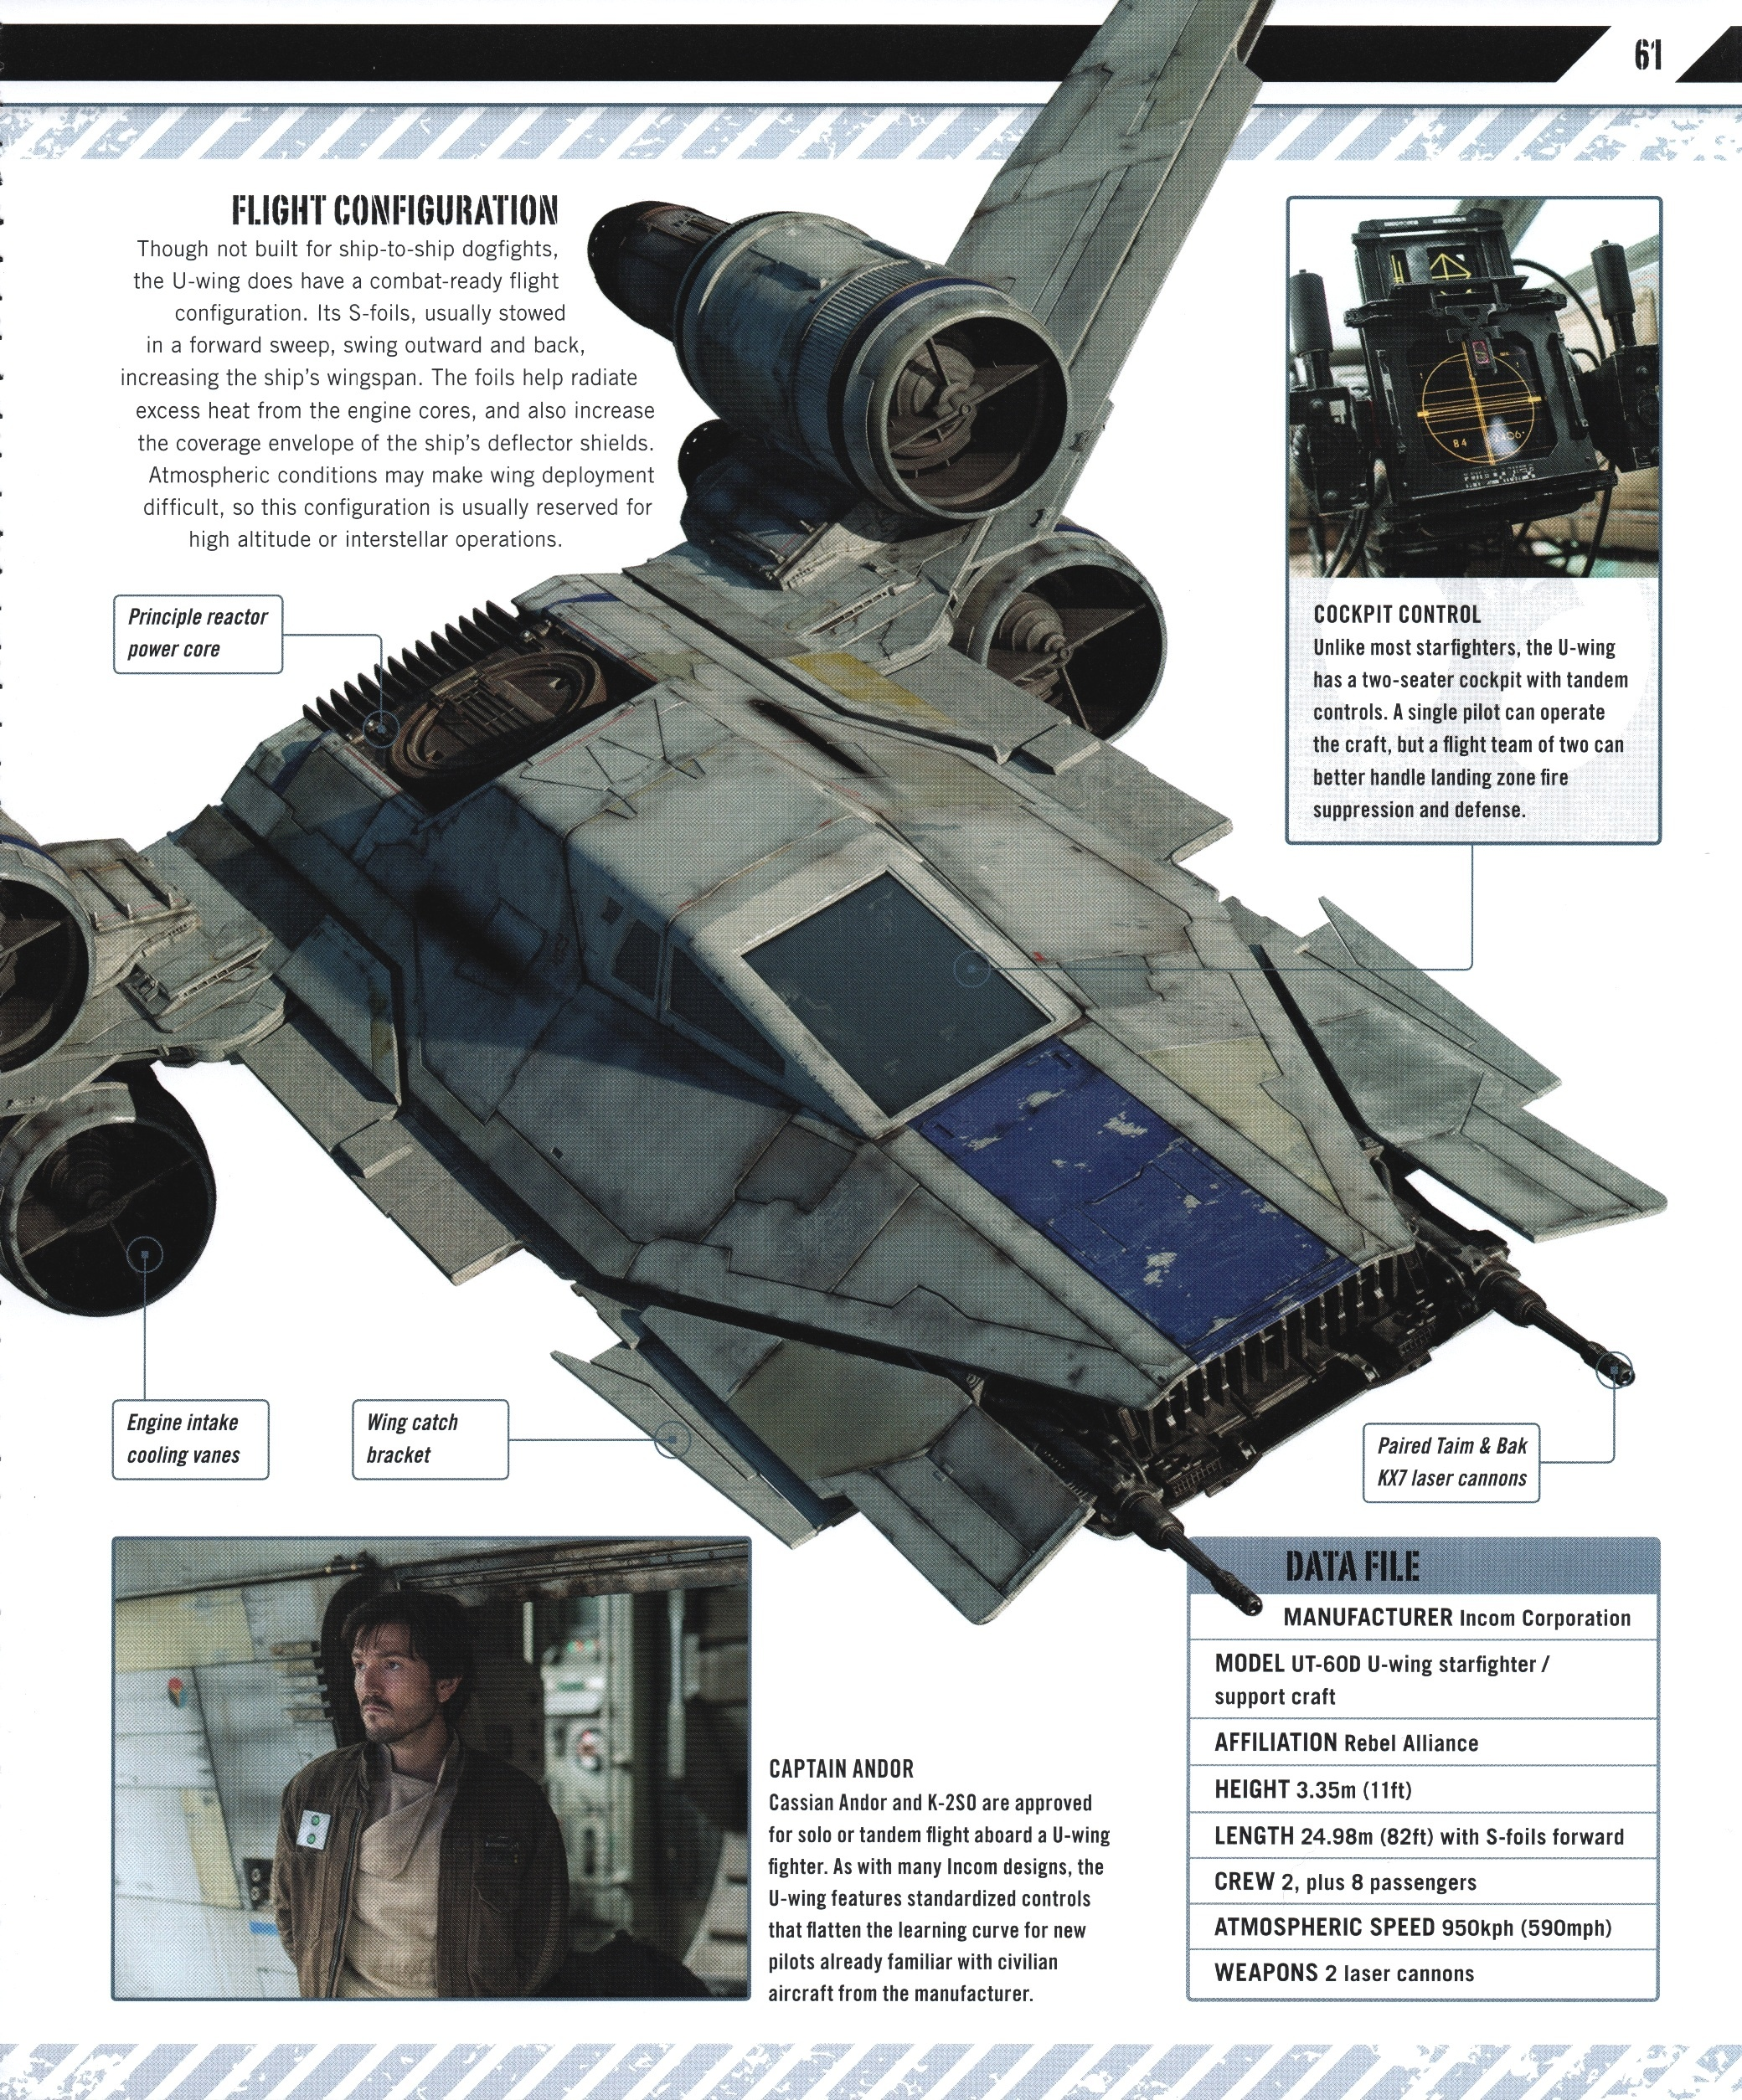 Rogue One Ultimate Visual Guide (b0bafett_Empire) p061